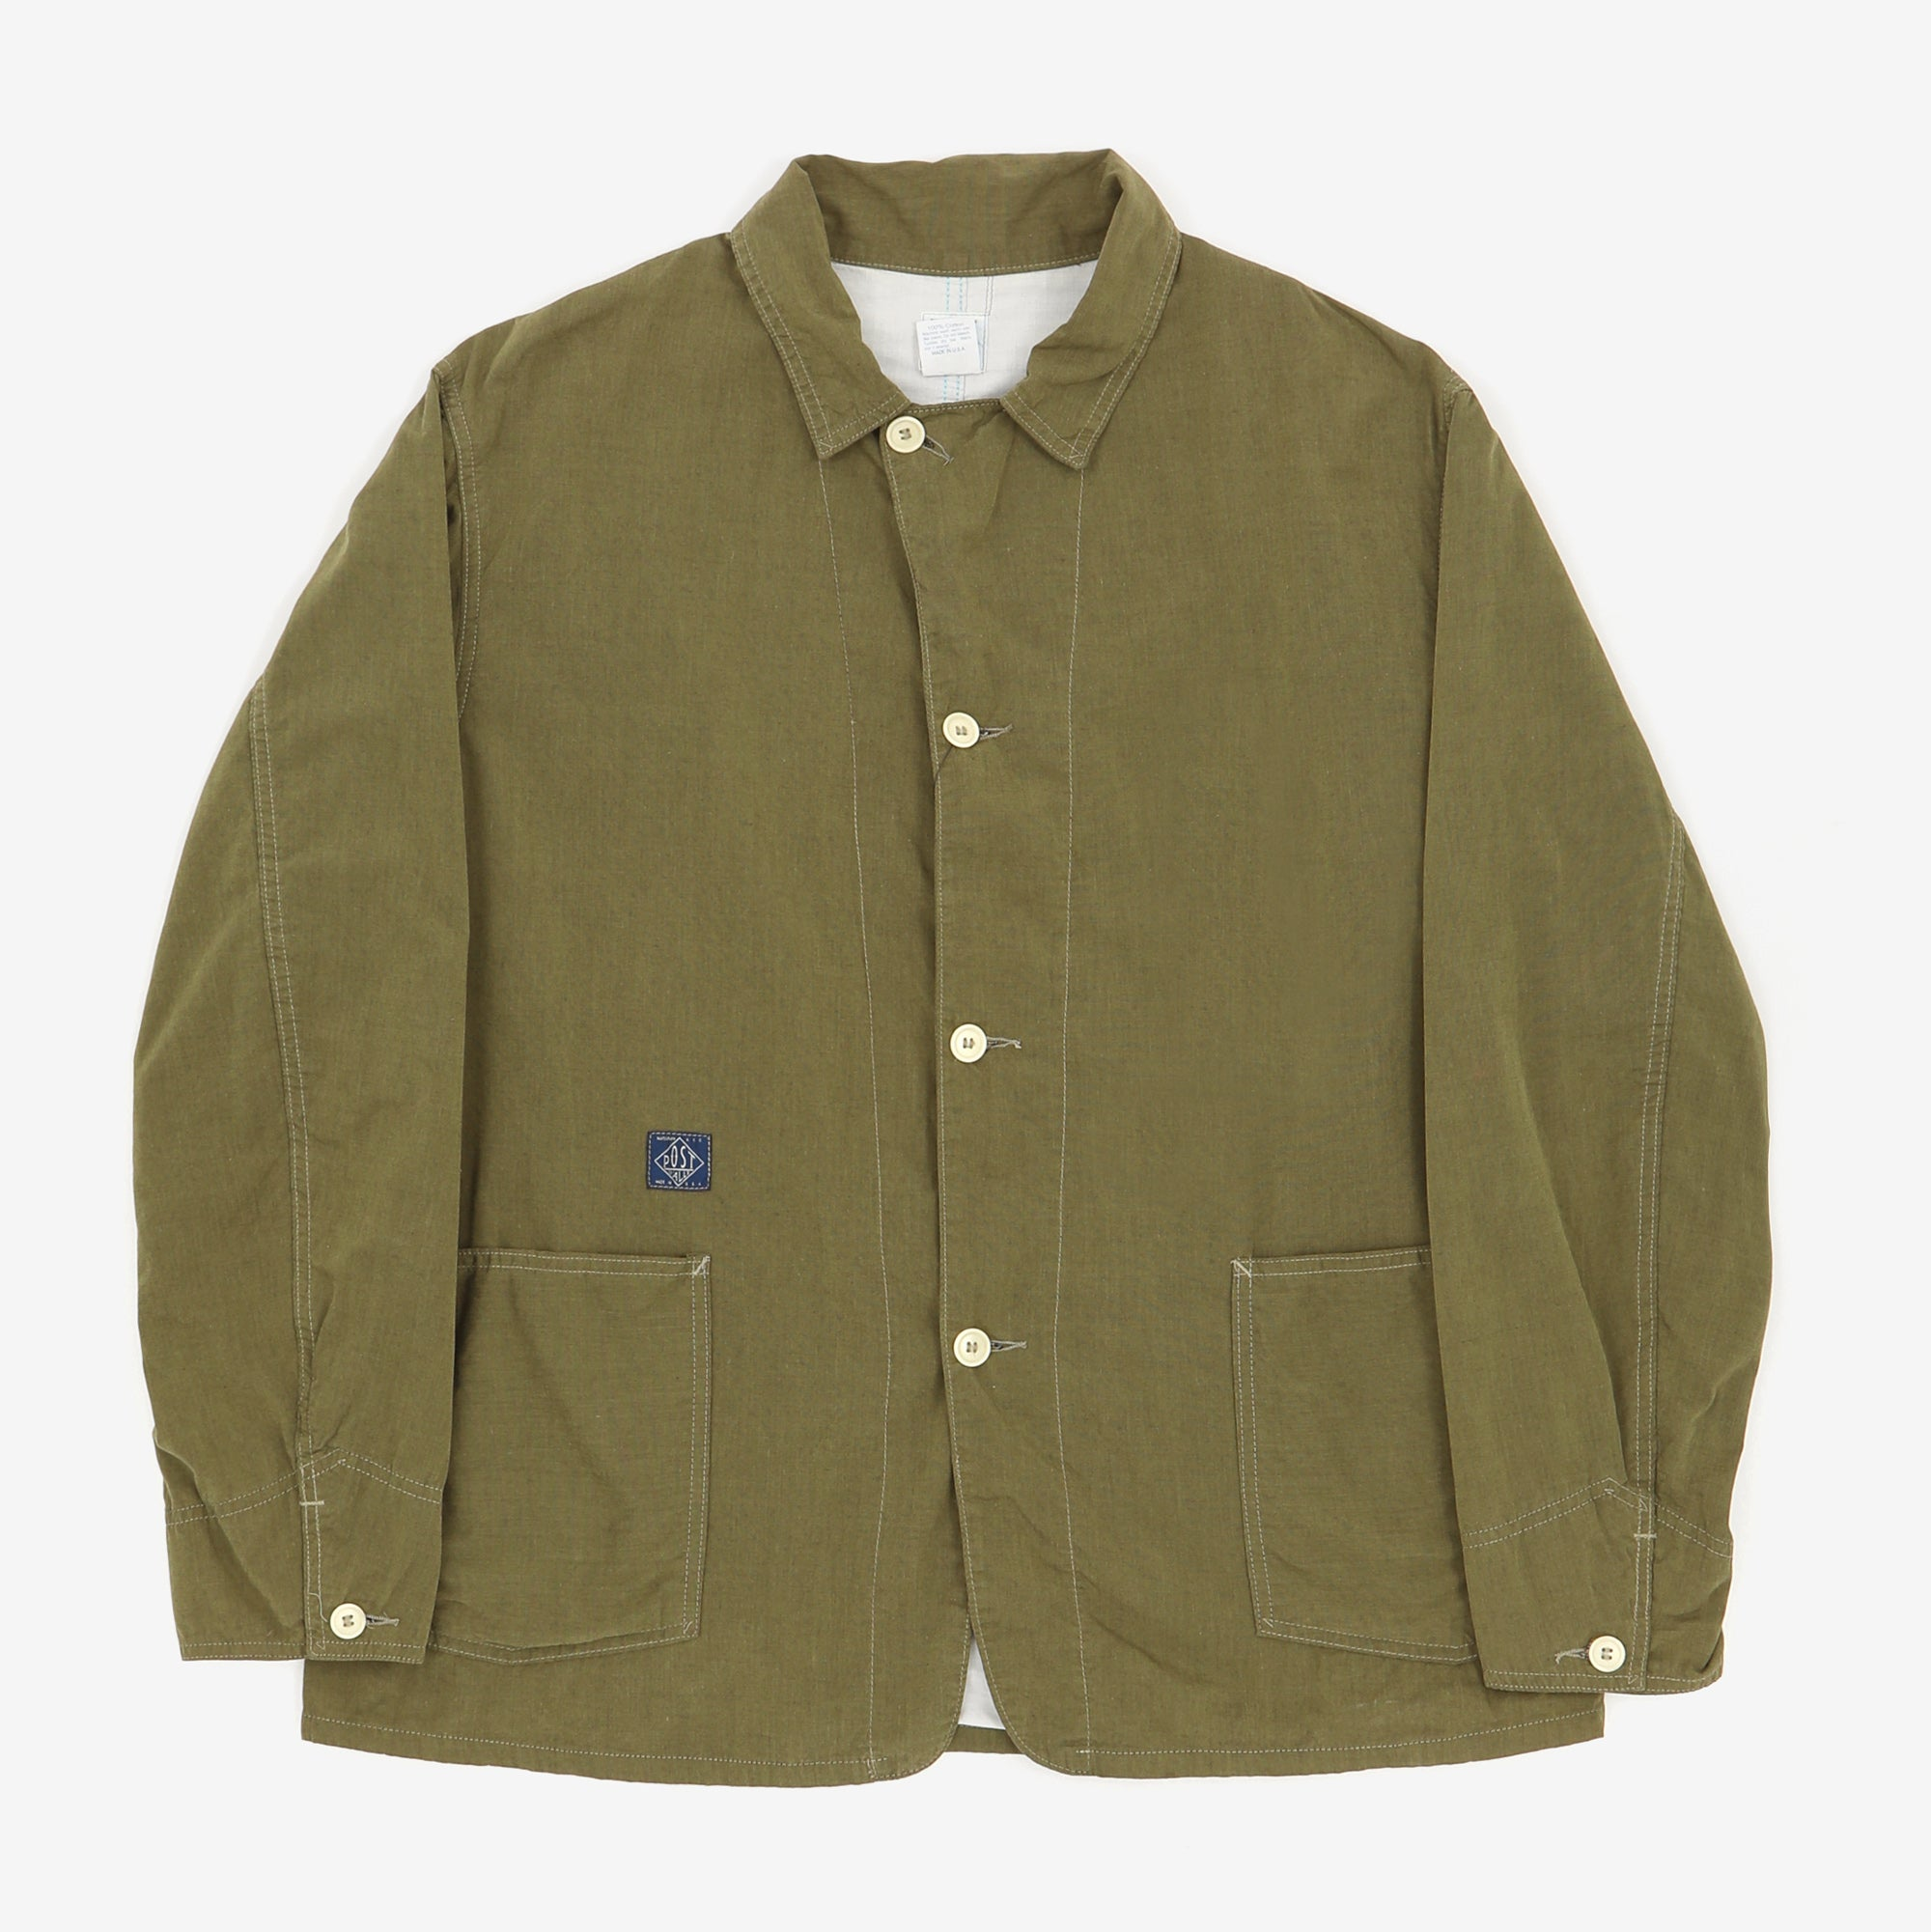 Post 40 Cotton Jacket